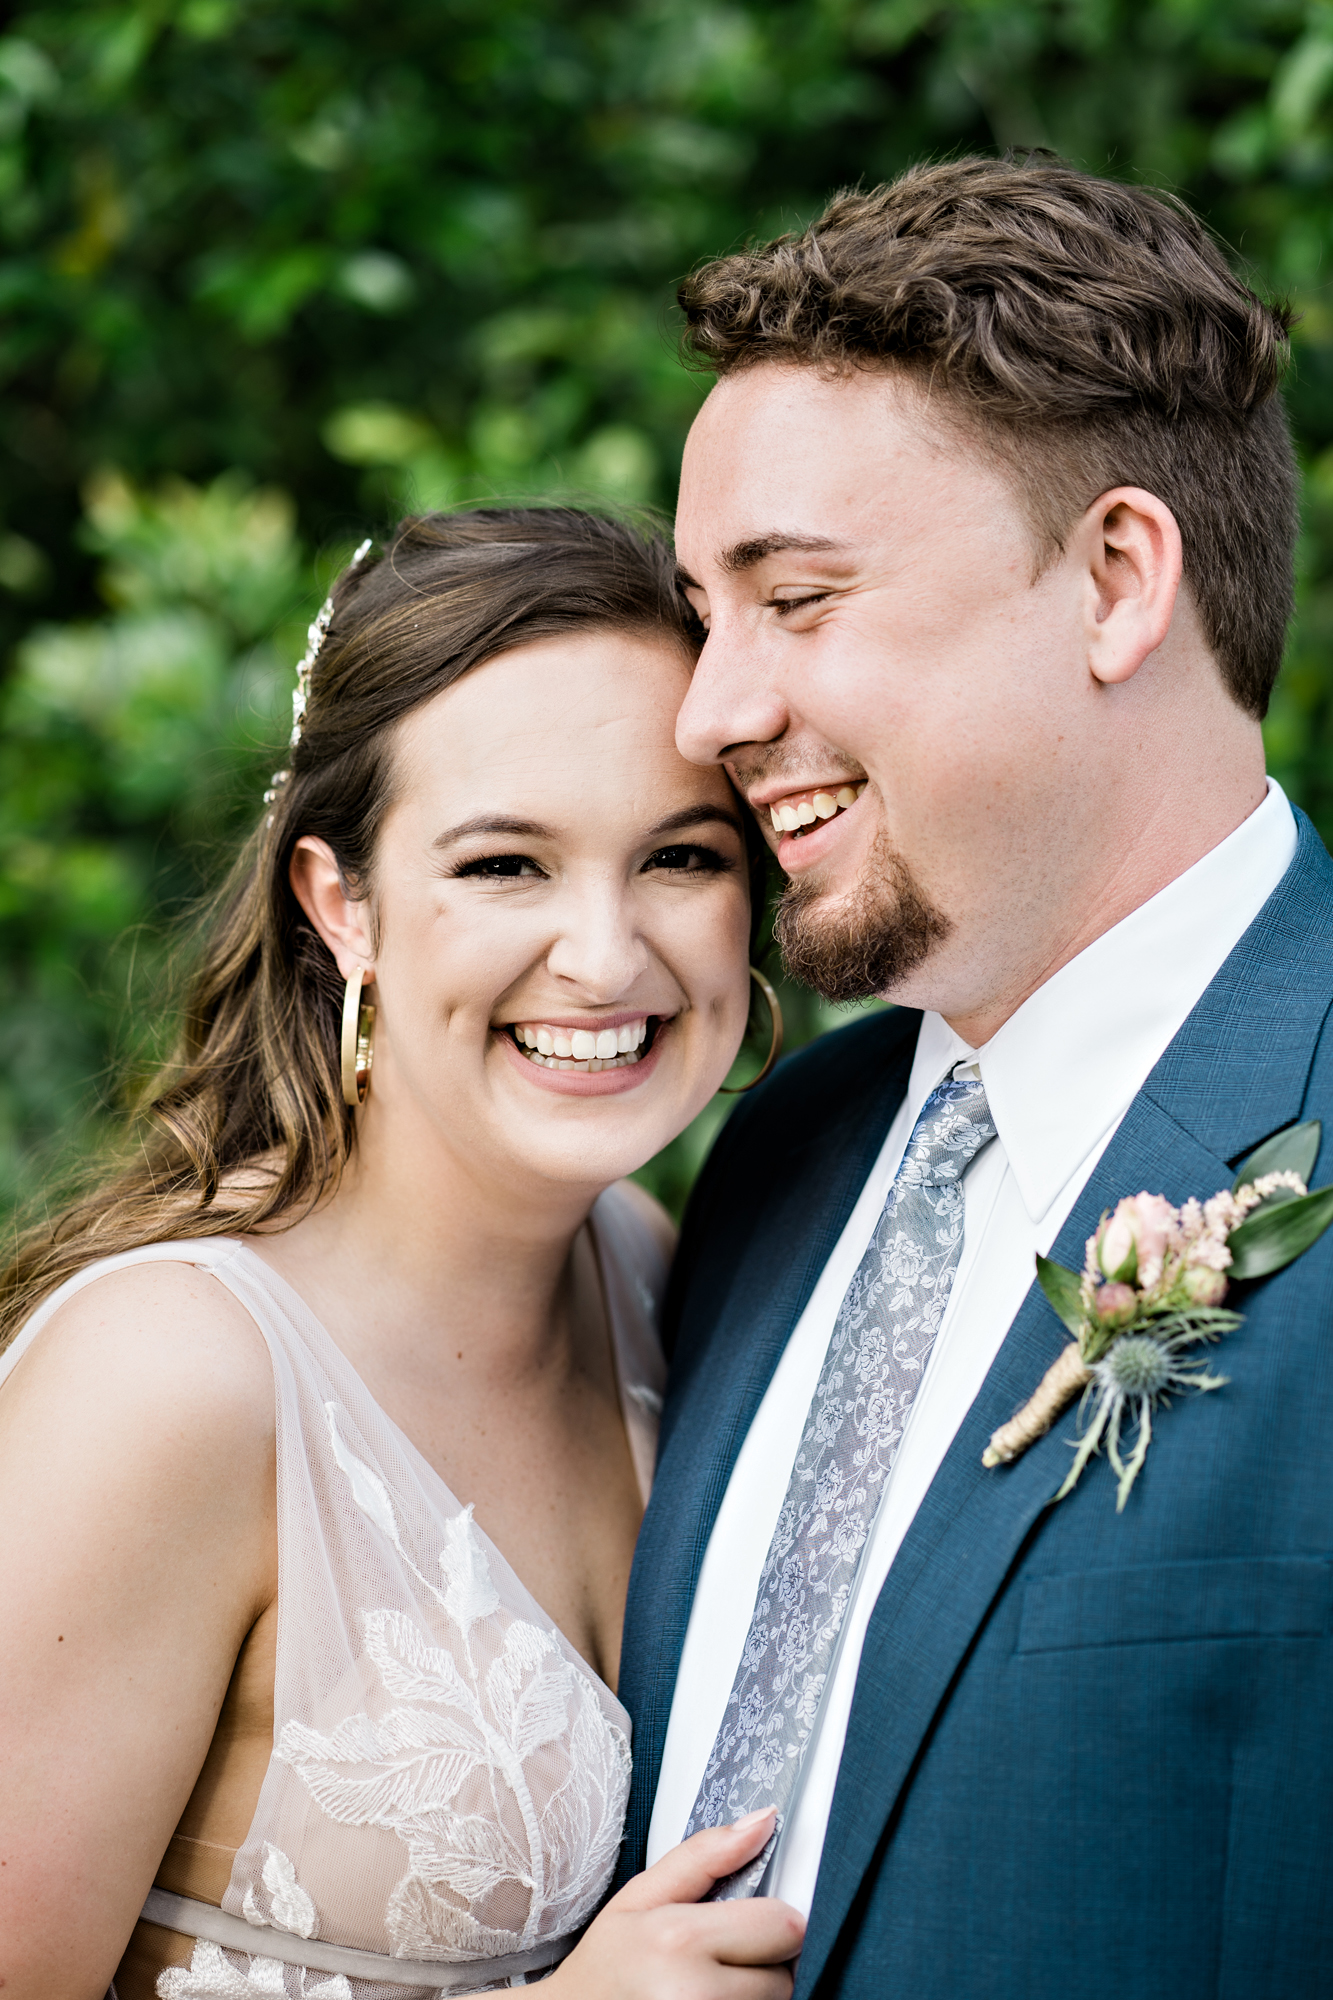 Eclectic-Alabama-Wedding-Photographers-Nick-Drollette-Photography-97.jpg